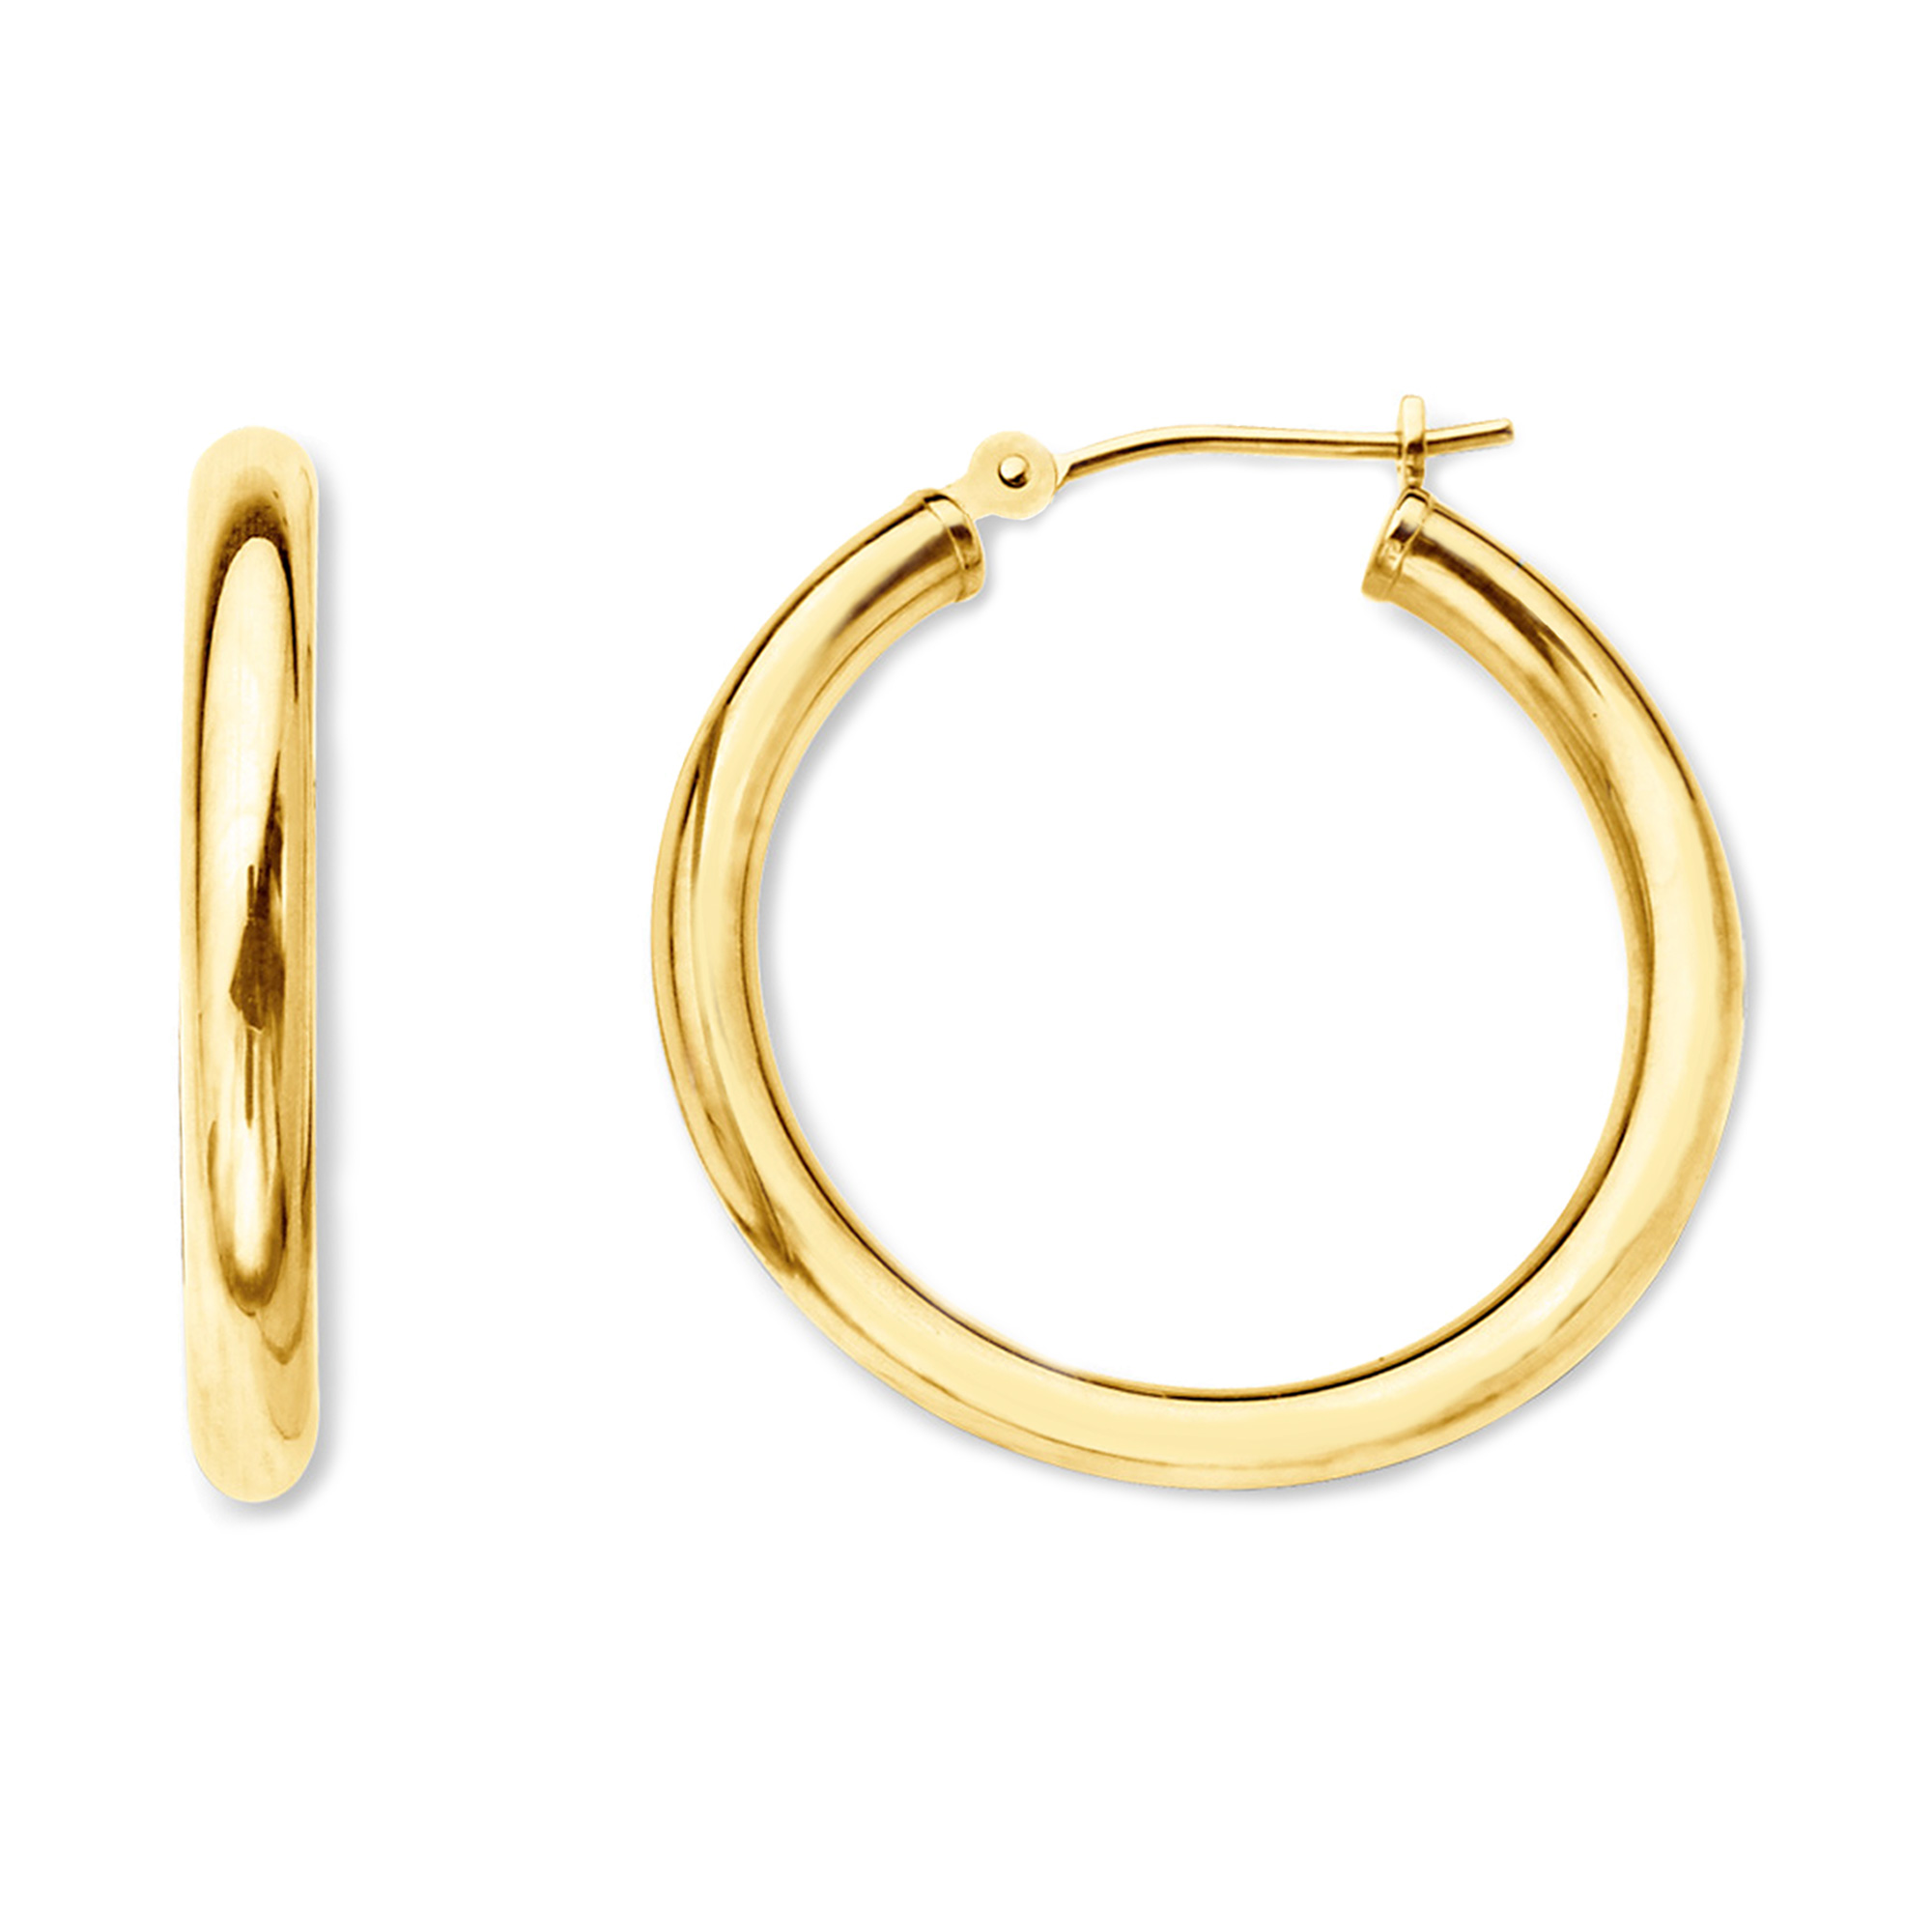 10k Yellow Gold 2mm Shiny Round Tube Hoop Earrings, Diameter 15mm Complete your jewelry collection with a gorgeous pair of 10k gold hoop earrings. Whether you prefer large bohemian look or tiny orbs, you'll discover plenty of sizes to match your style. These earrings have a secure snap post clasp making them easy to wear and remove.